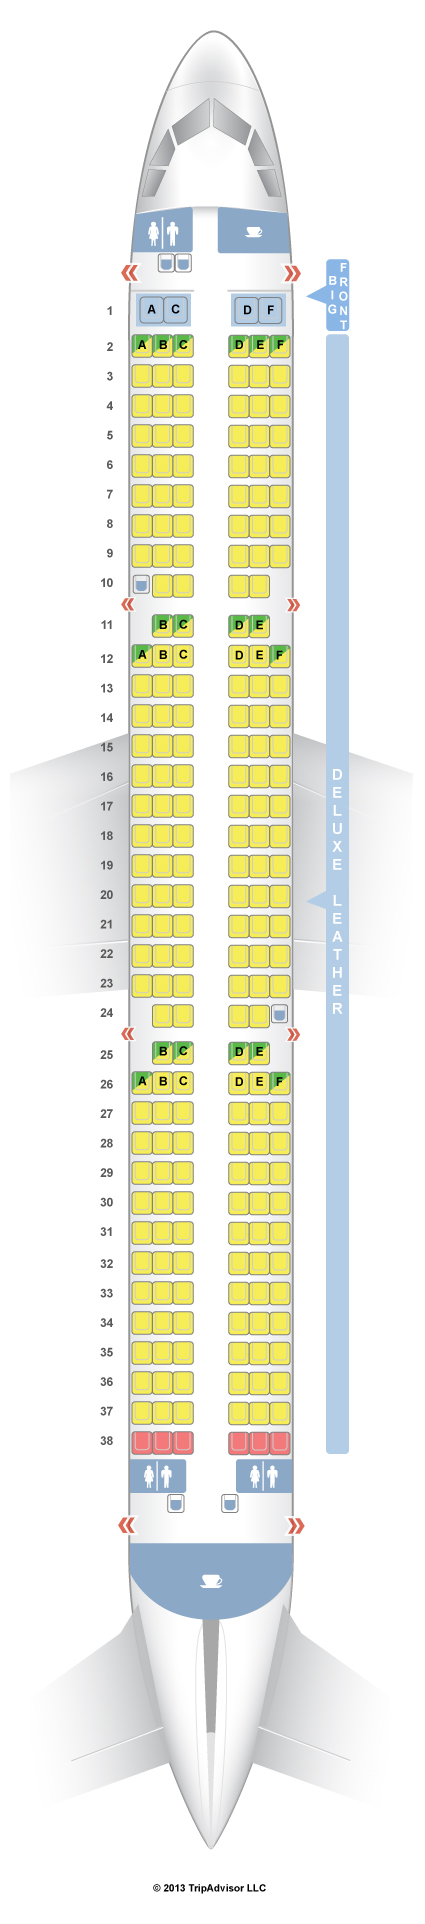 Spirit airline seat assignment